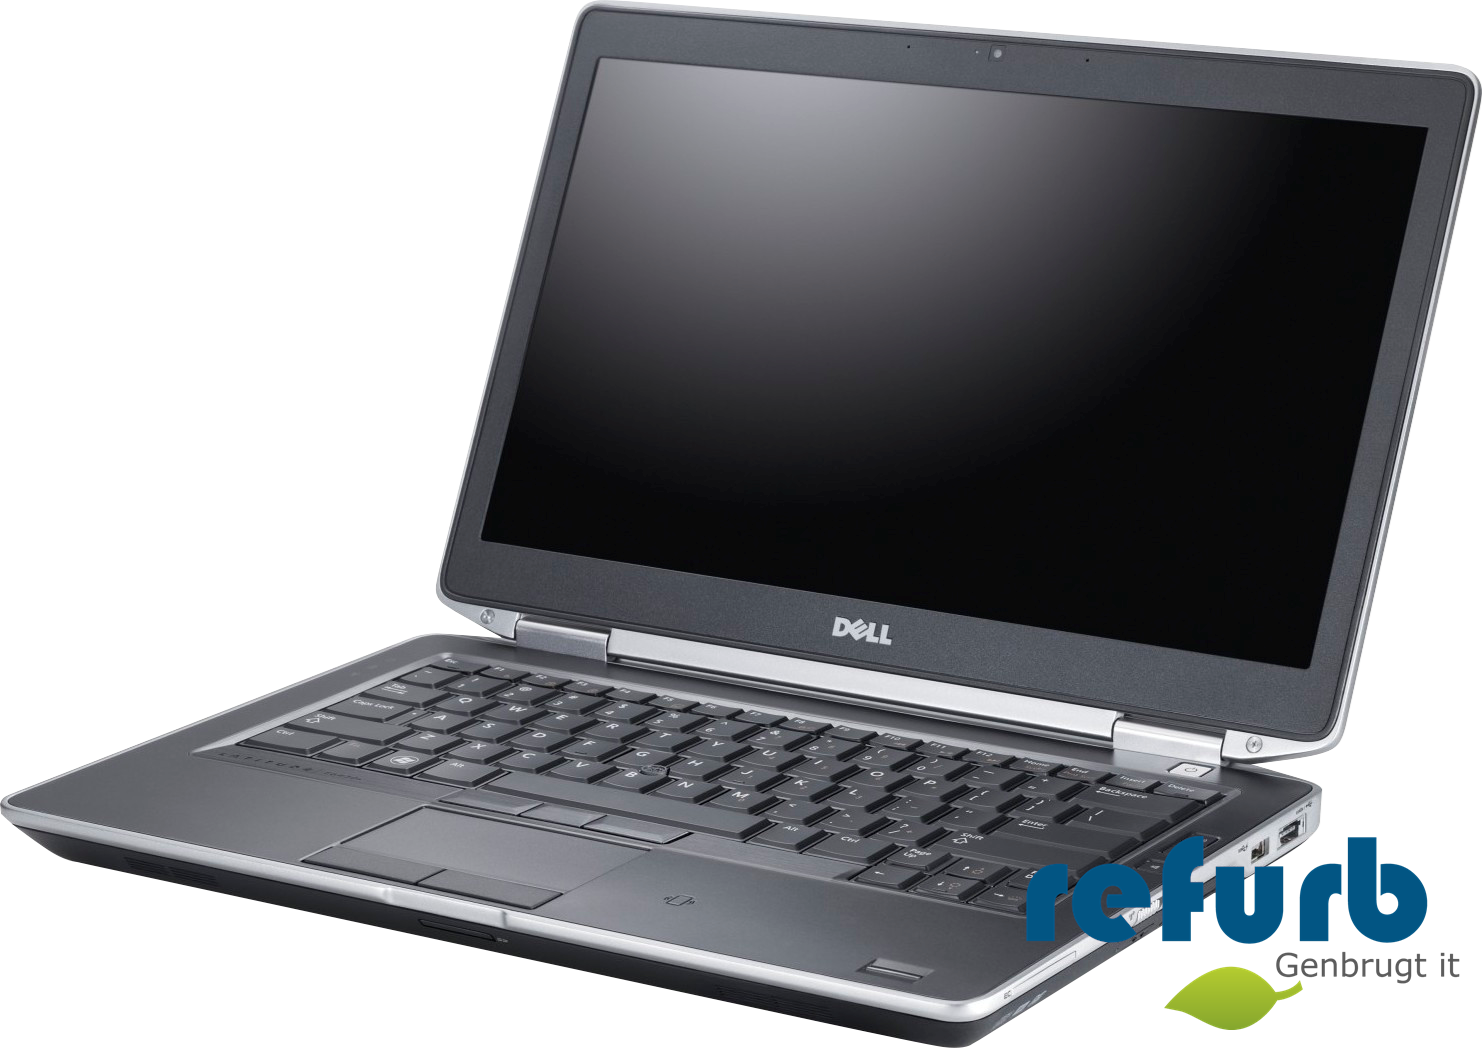 Dell Dell latitude e6430 fra refurb